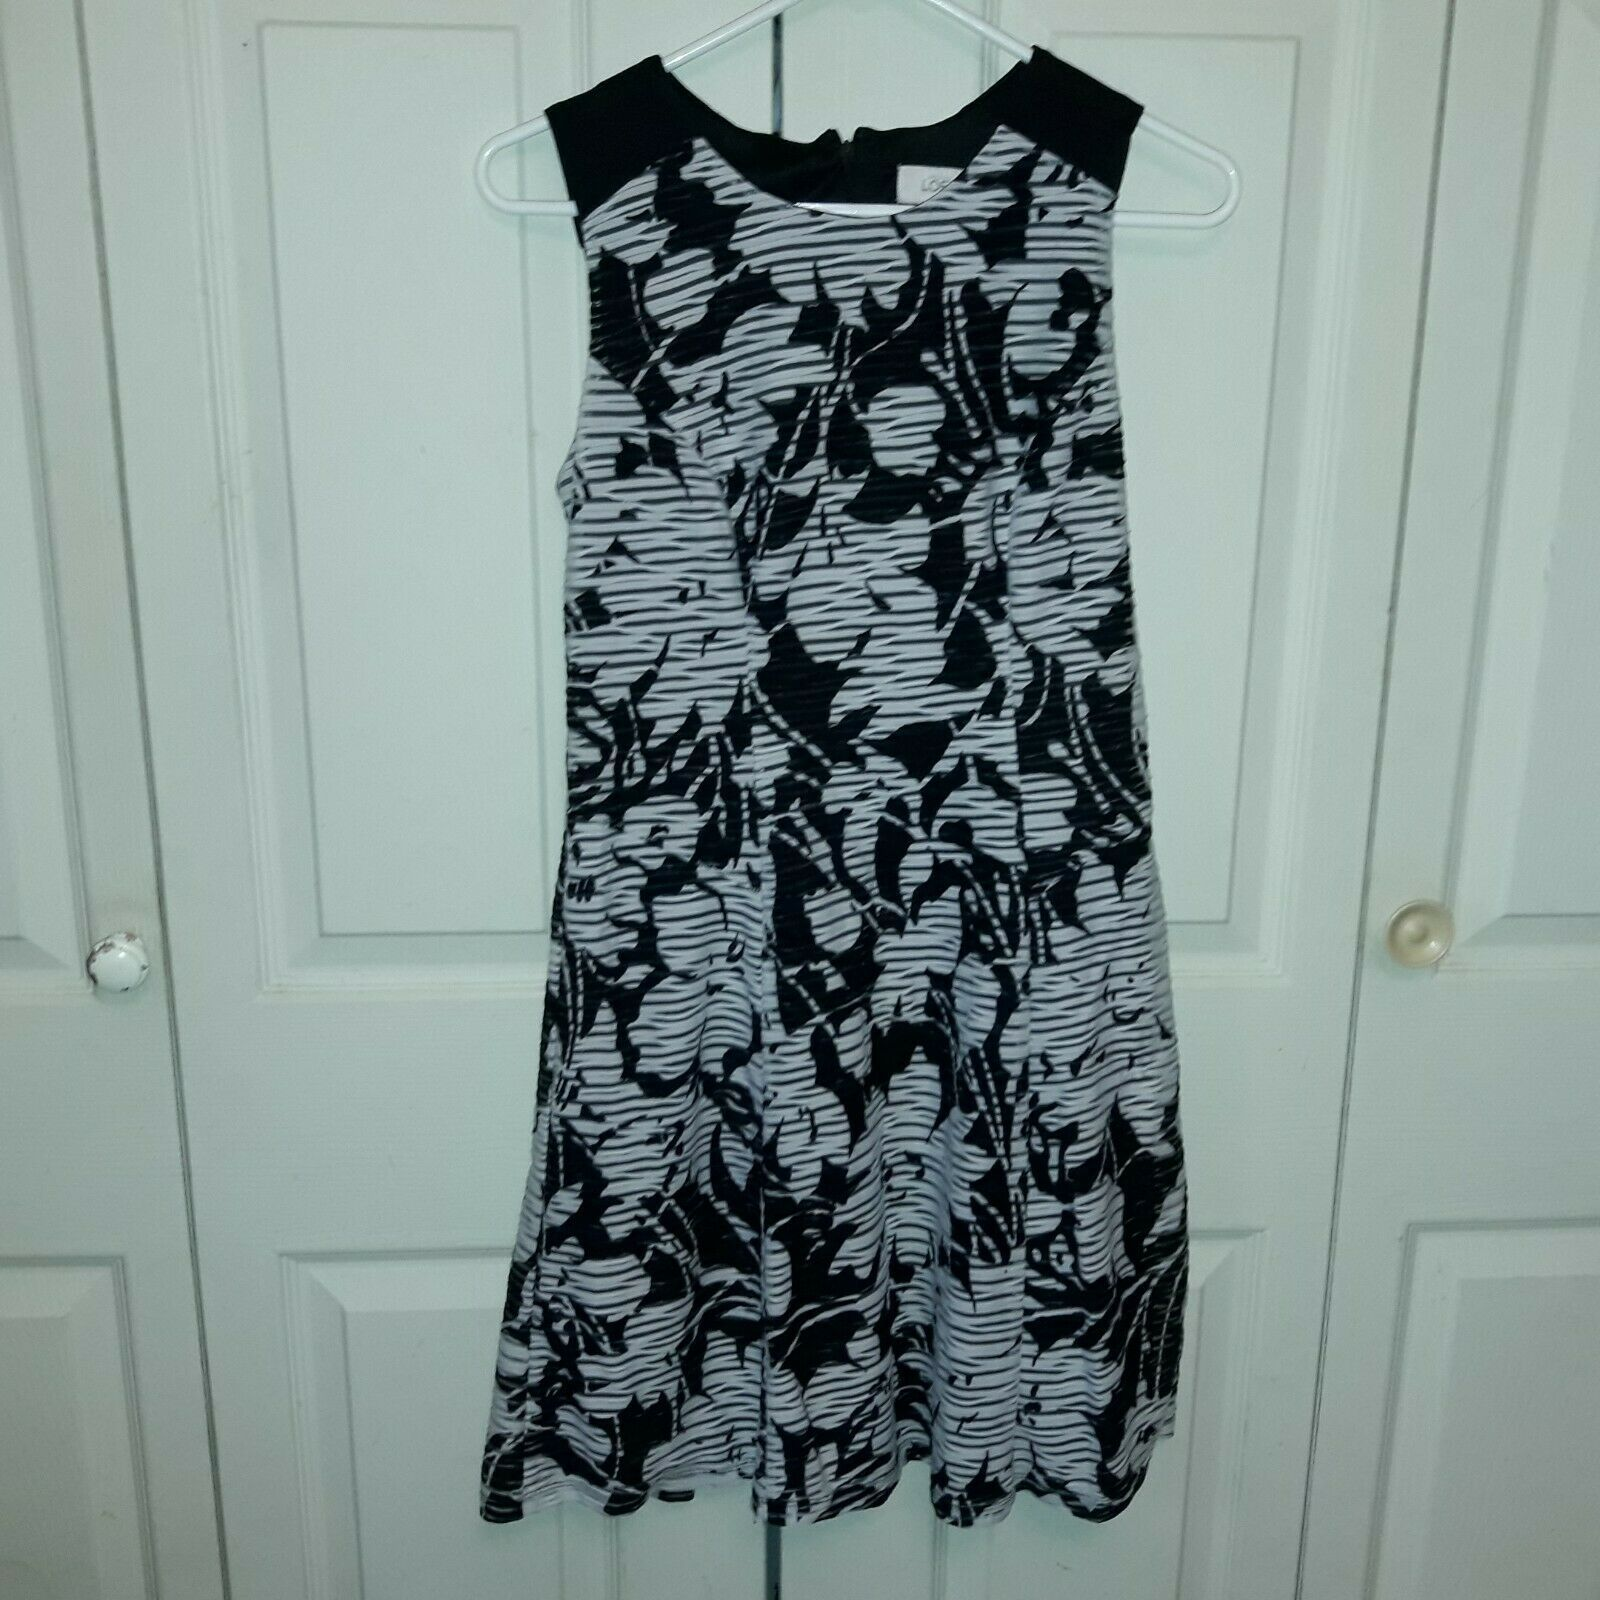 Women's Ann Taylor Loft Factory Shift Dress Size 2 Black/White